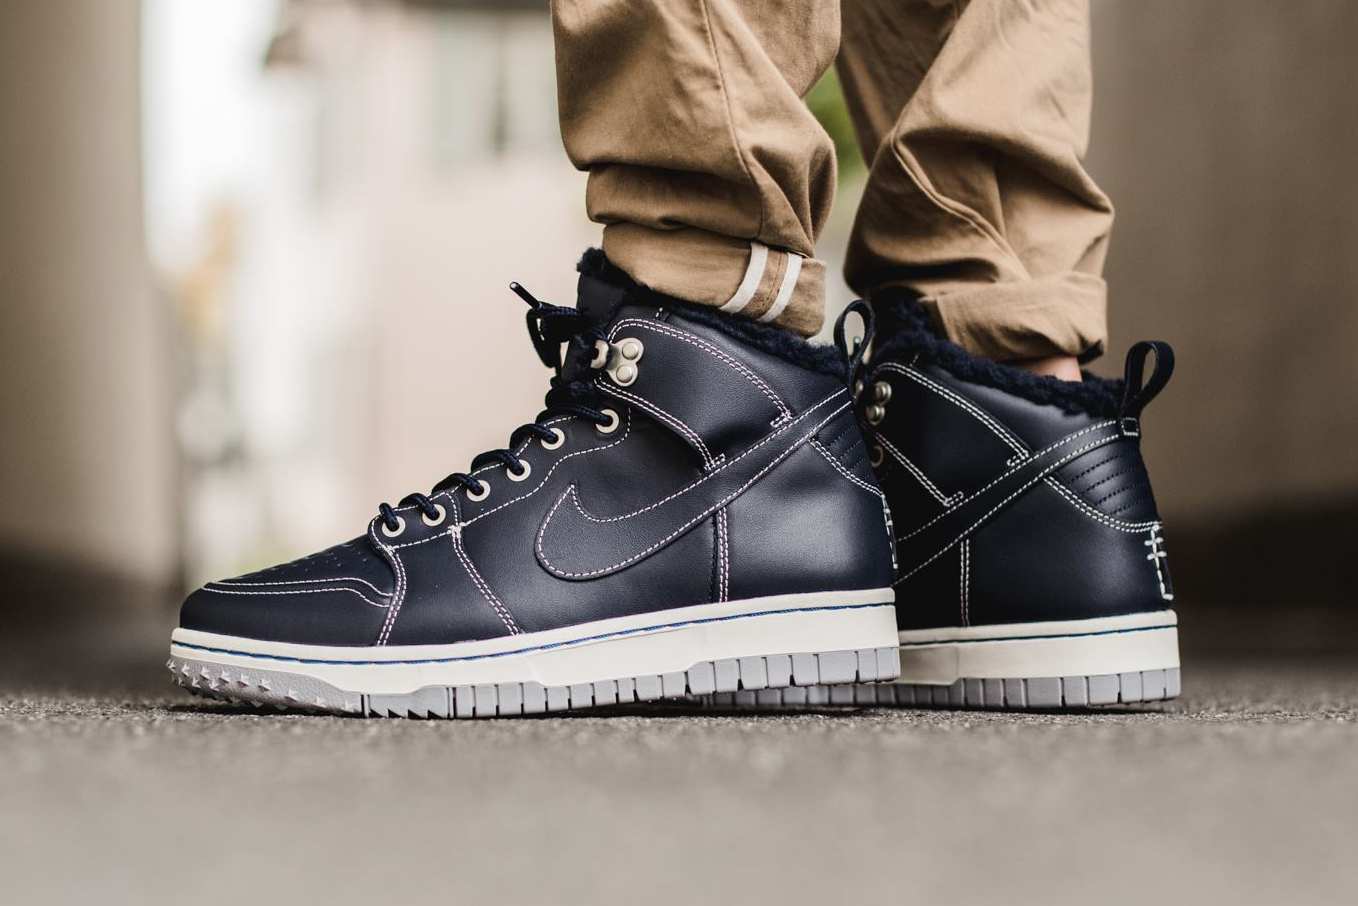 Did You Pick Up Either Pair Of The Nike Dunk High Be True To Your ...